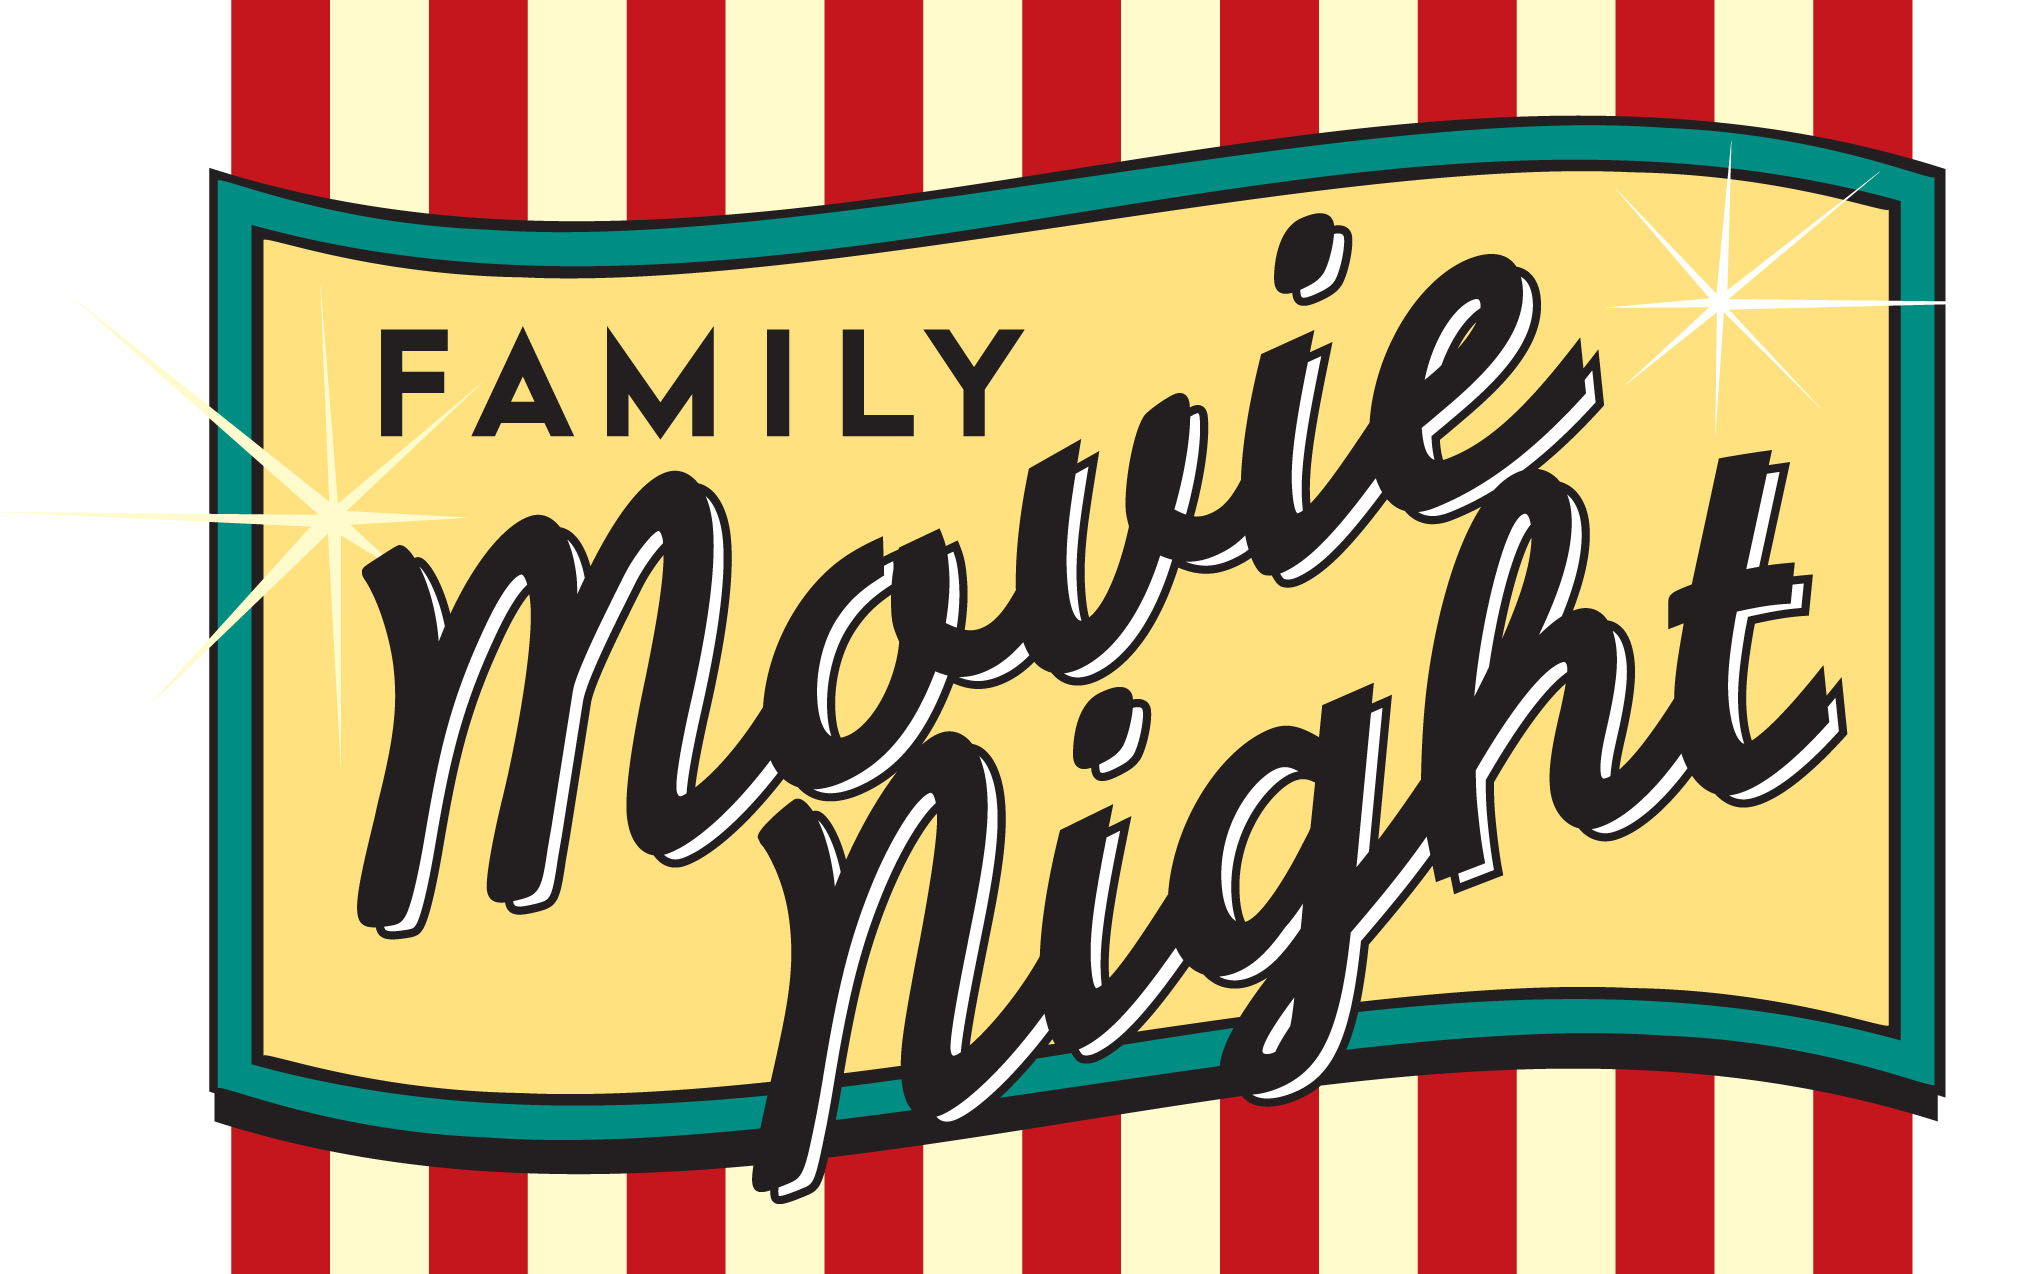 Family Movie Night Clipart.